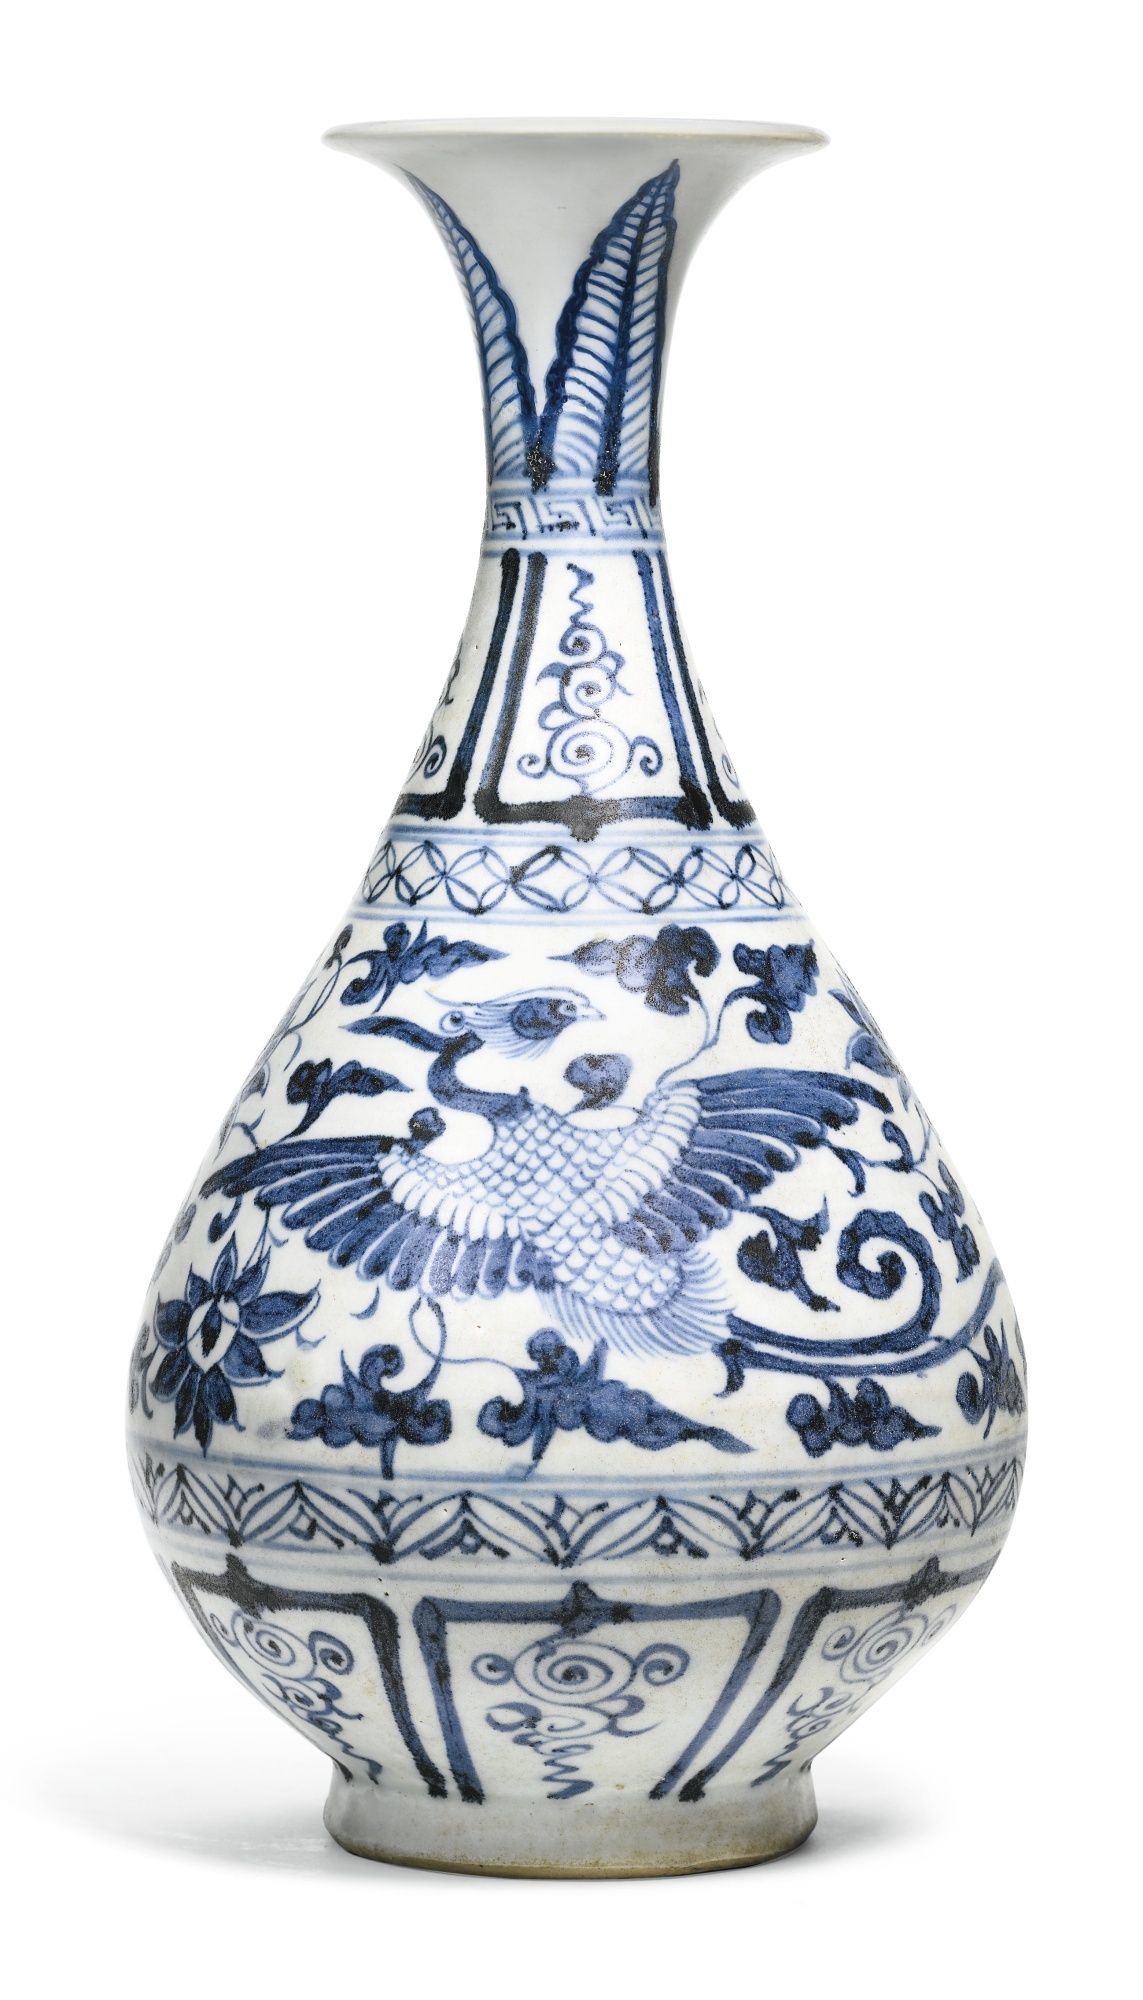 A blue and white phoenix vase yuhuchunping yuan dynasty yuan a blue and white phoenix vase yuhuchunping yuan dynasty reviewsmspy